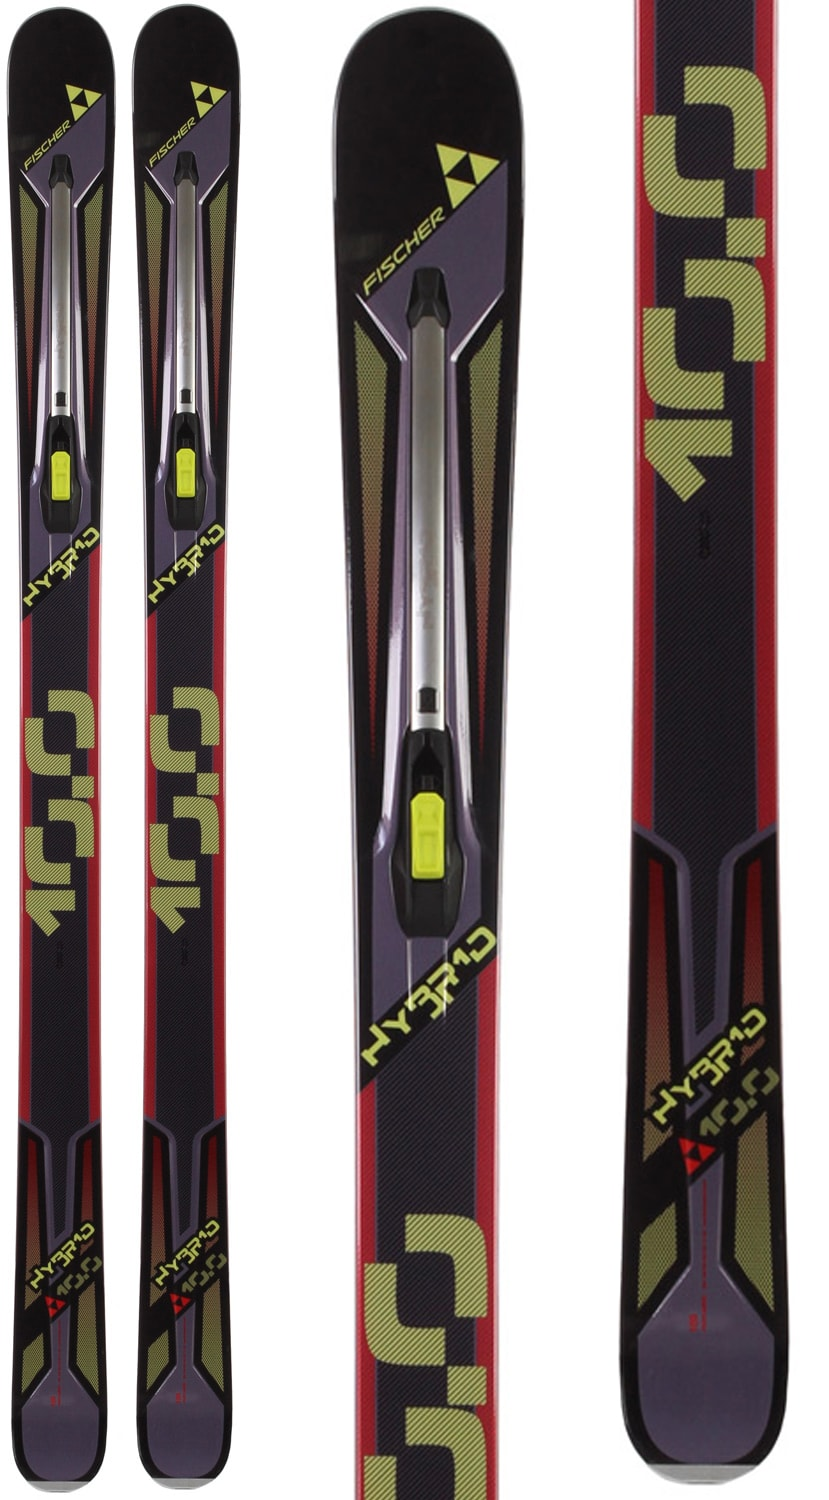 on sale fischer hybrid 10 0 skis up to 60 off. Black Bedroom Furniture Sets. Home Design Ideas